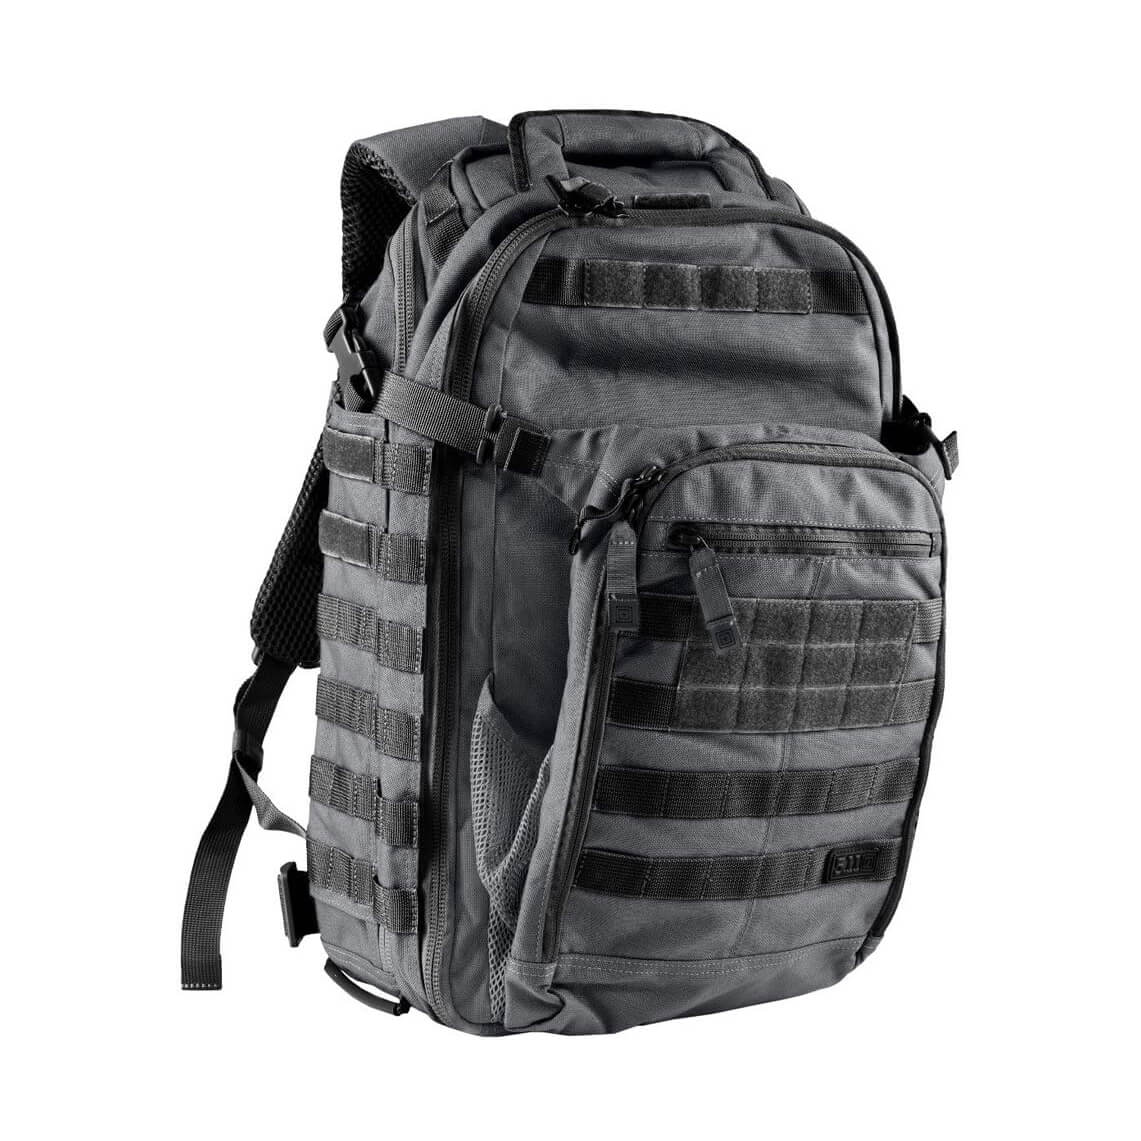 5.11 Tactical All Hazards Prime Assault Backpack